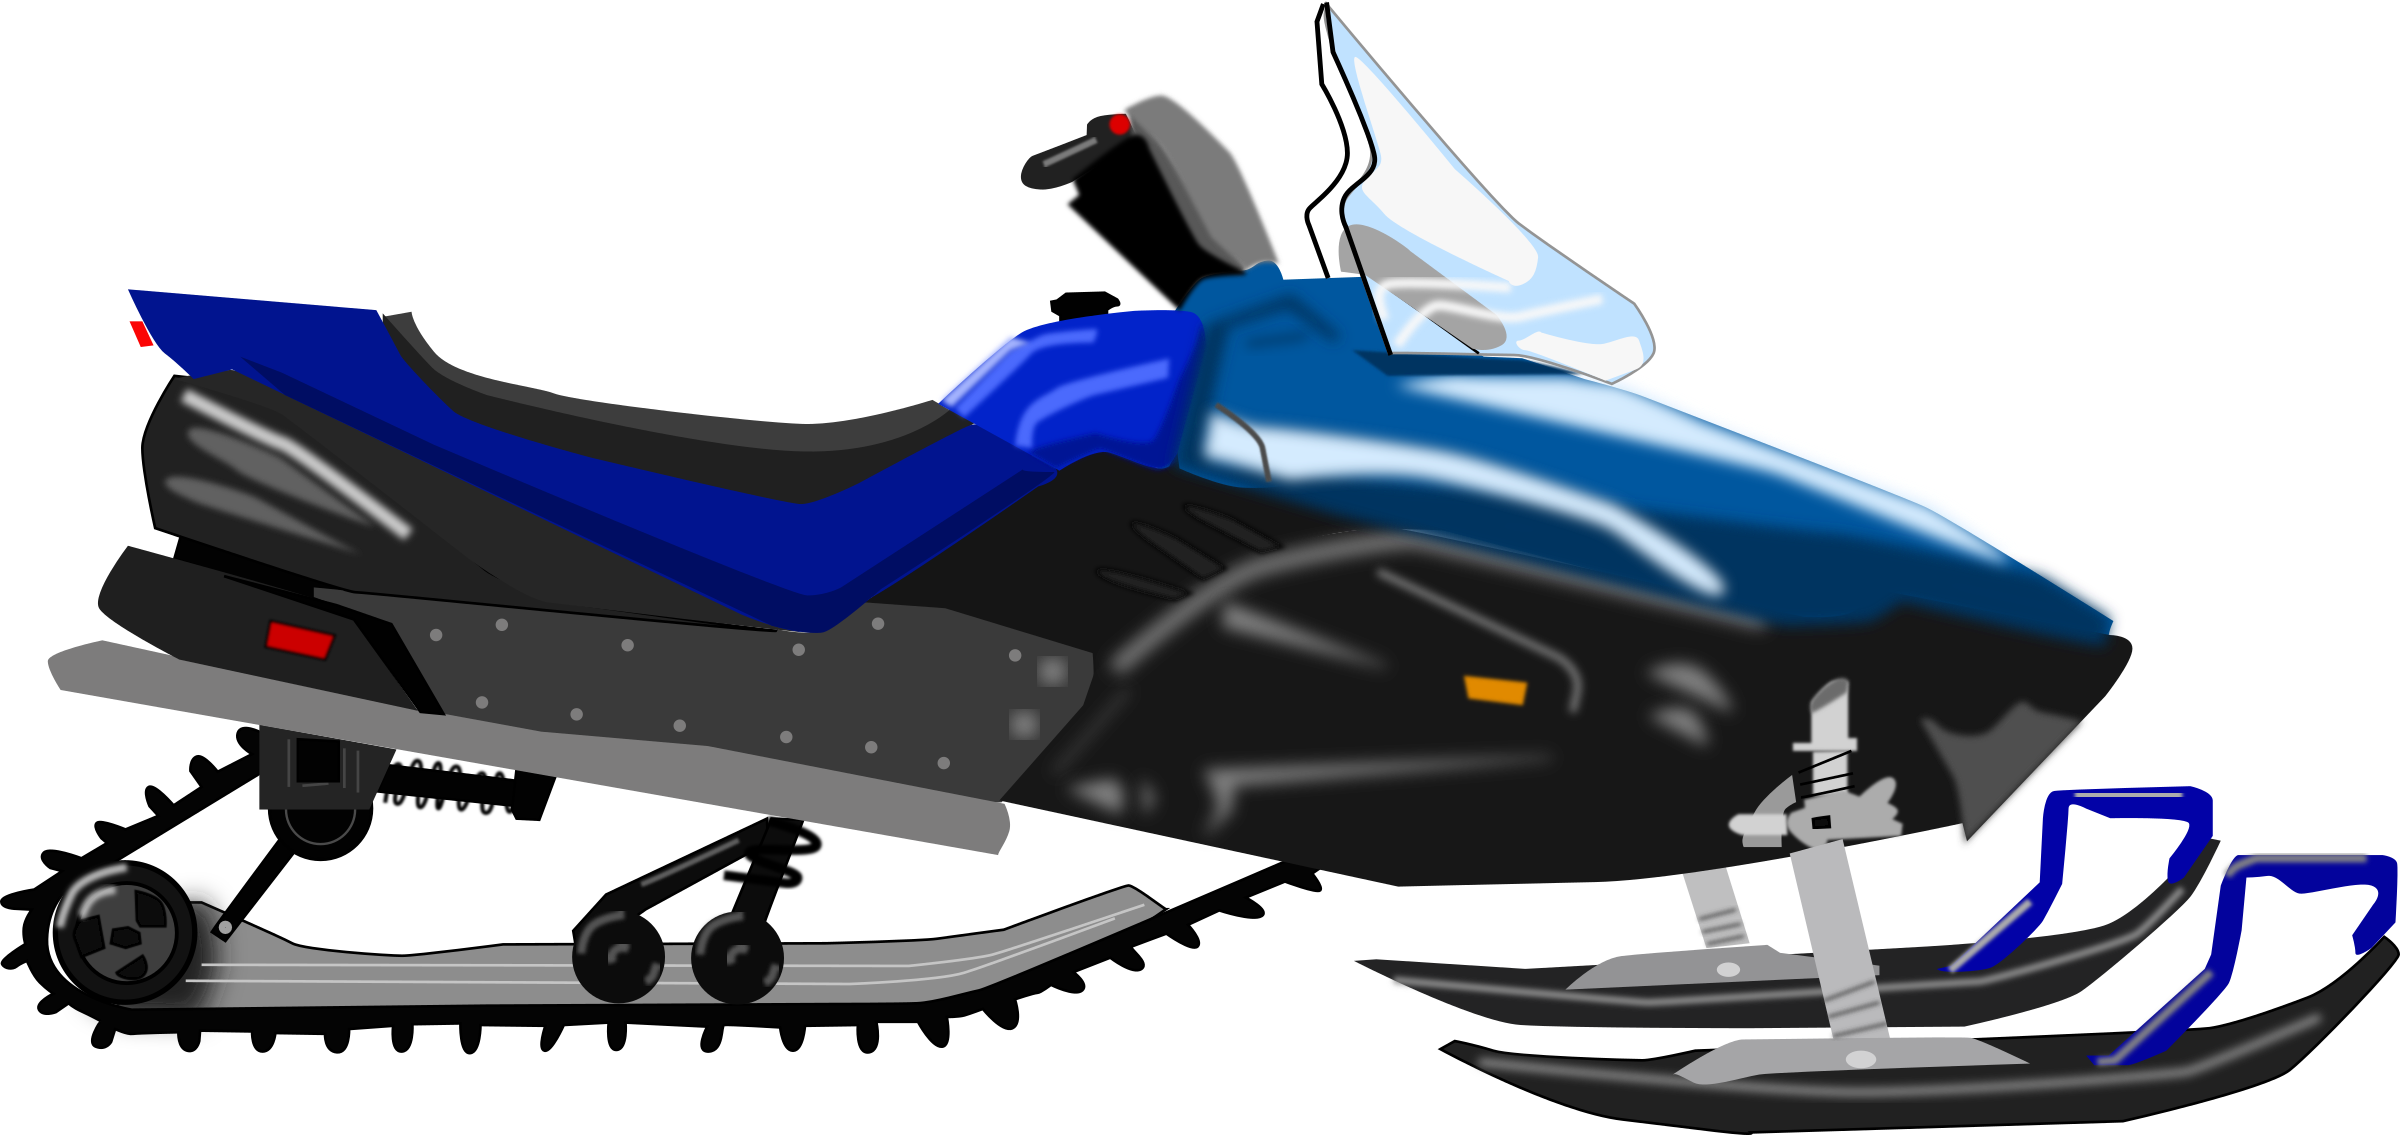 Snowmobile clipart transparent. Icons png free and